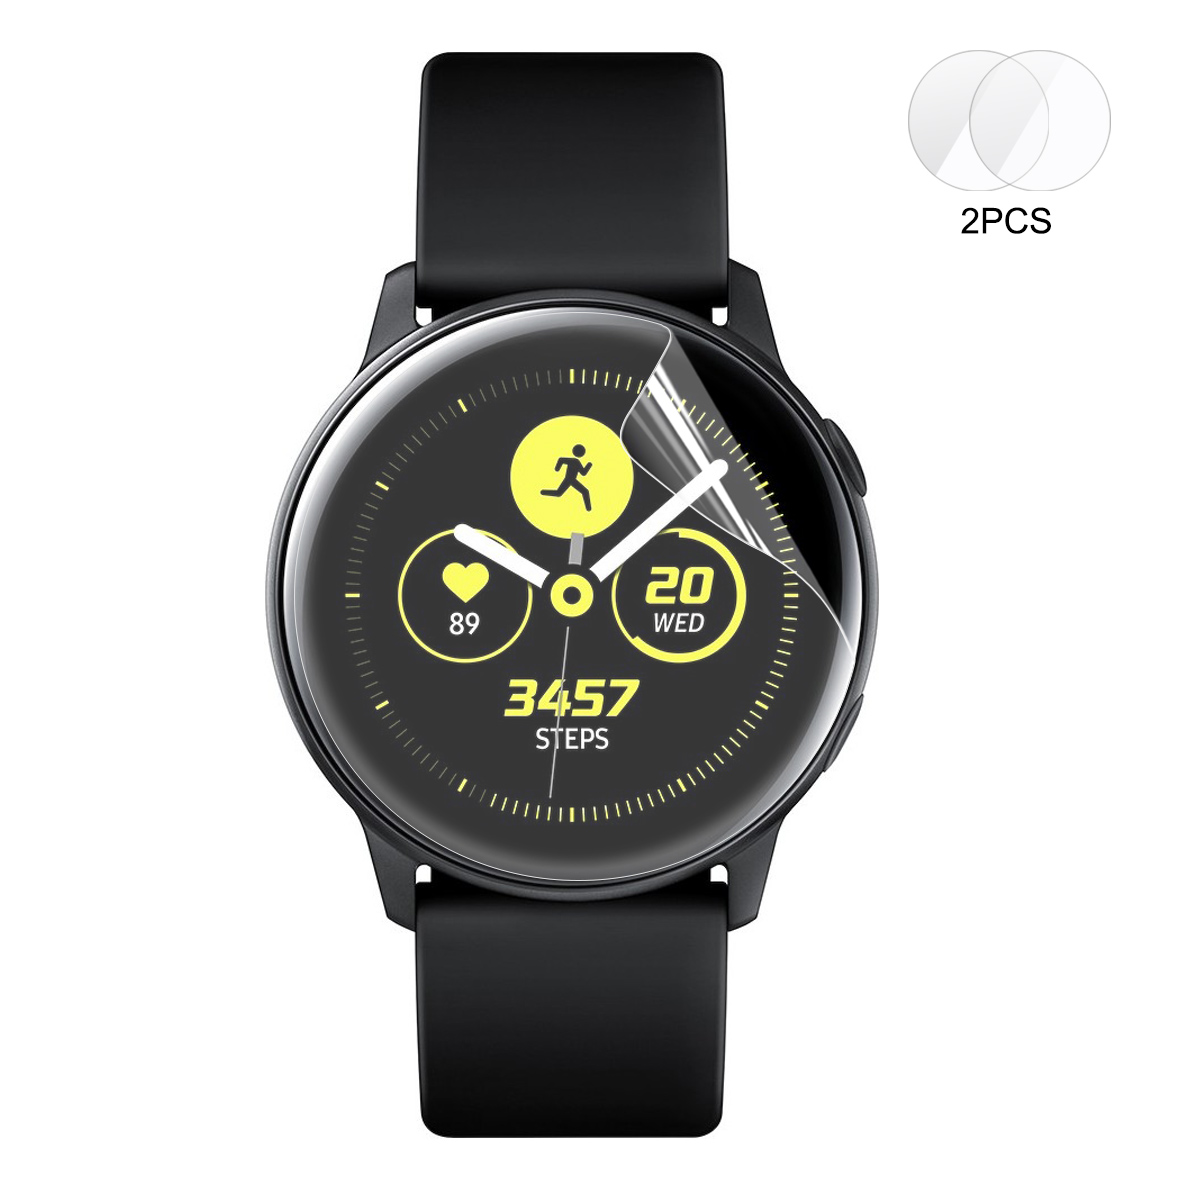 2 Packs Enkay Full Screen Cover Watch Screen Protector For Samsung Galaxy Watch Active 2019